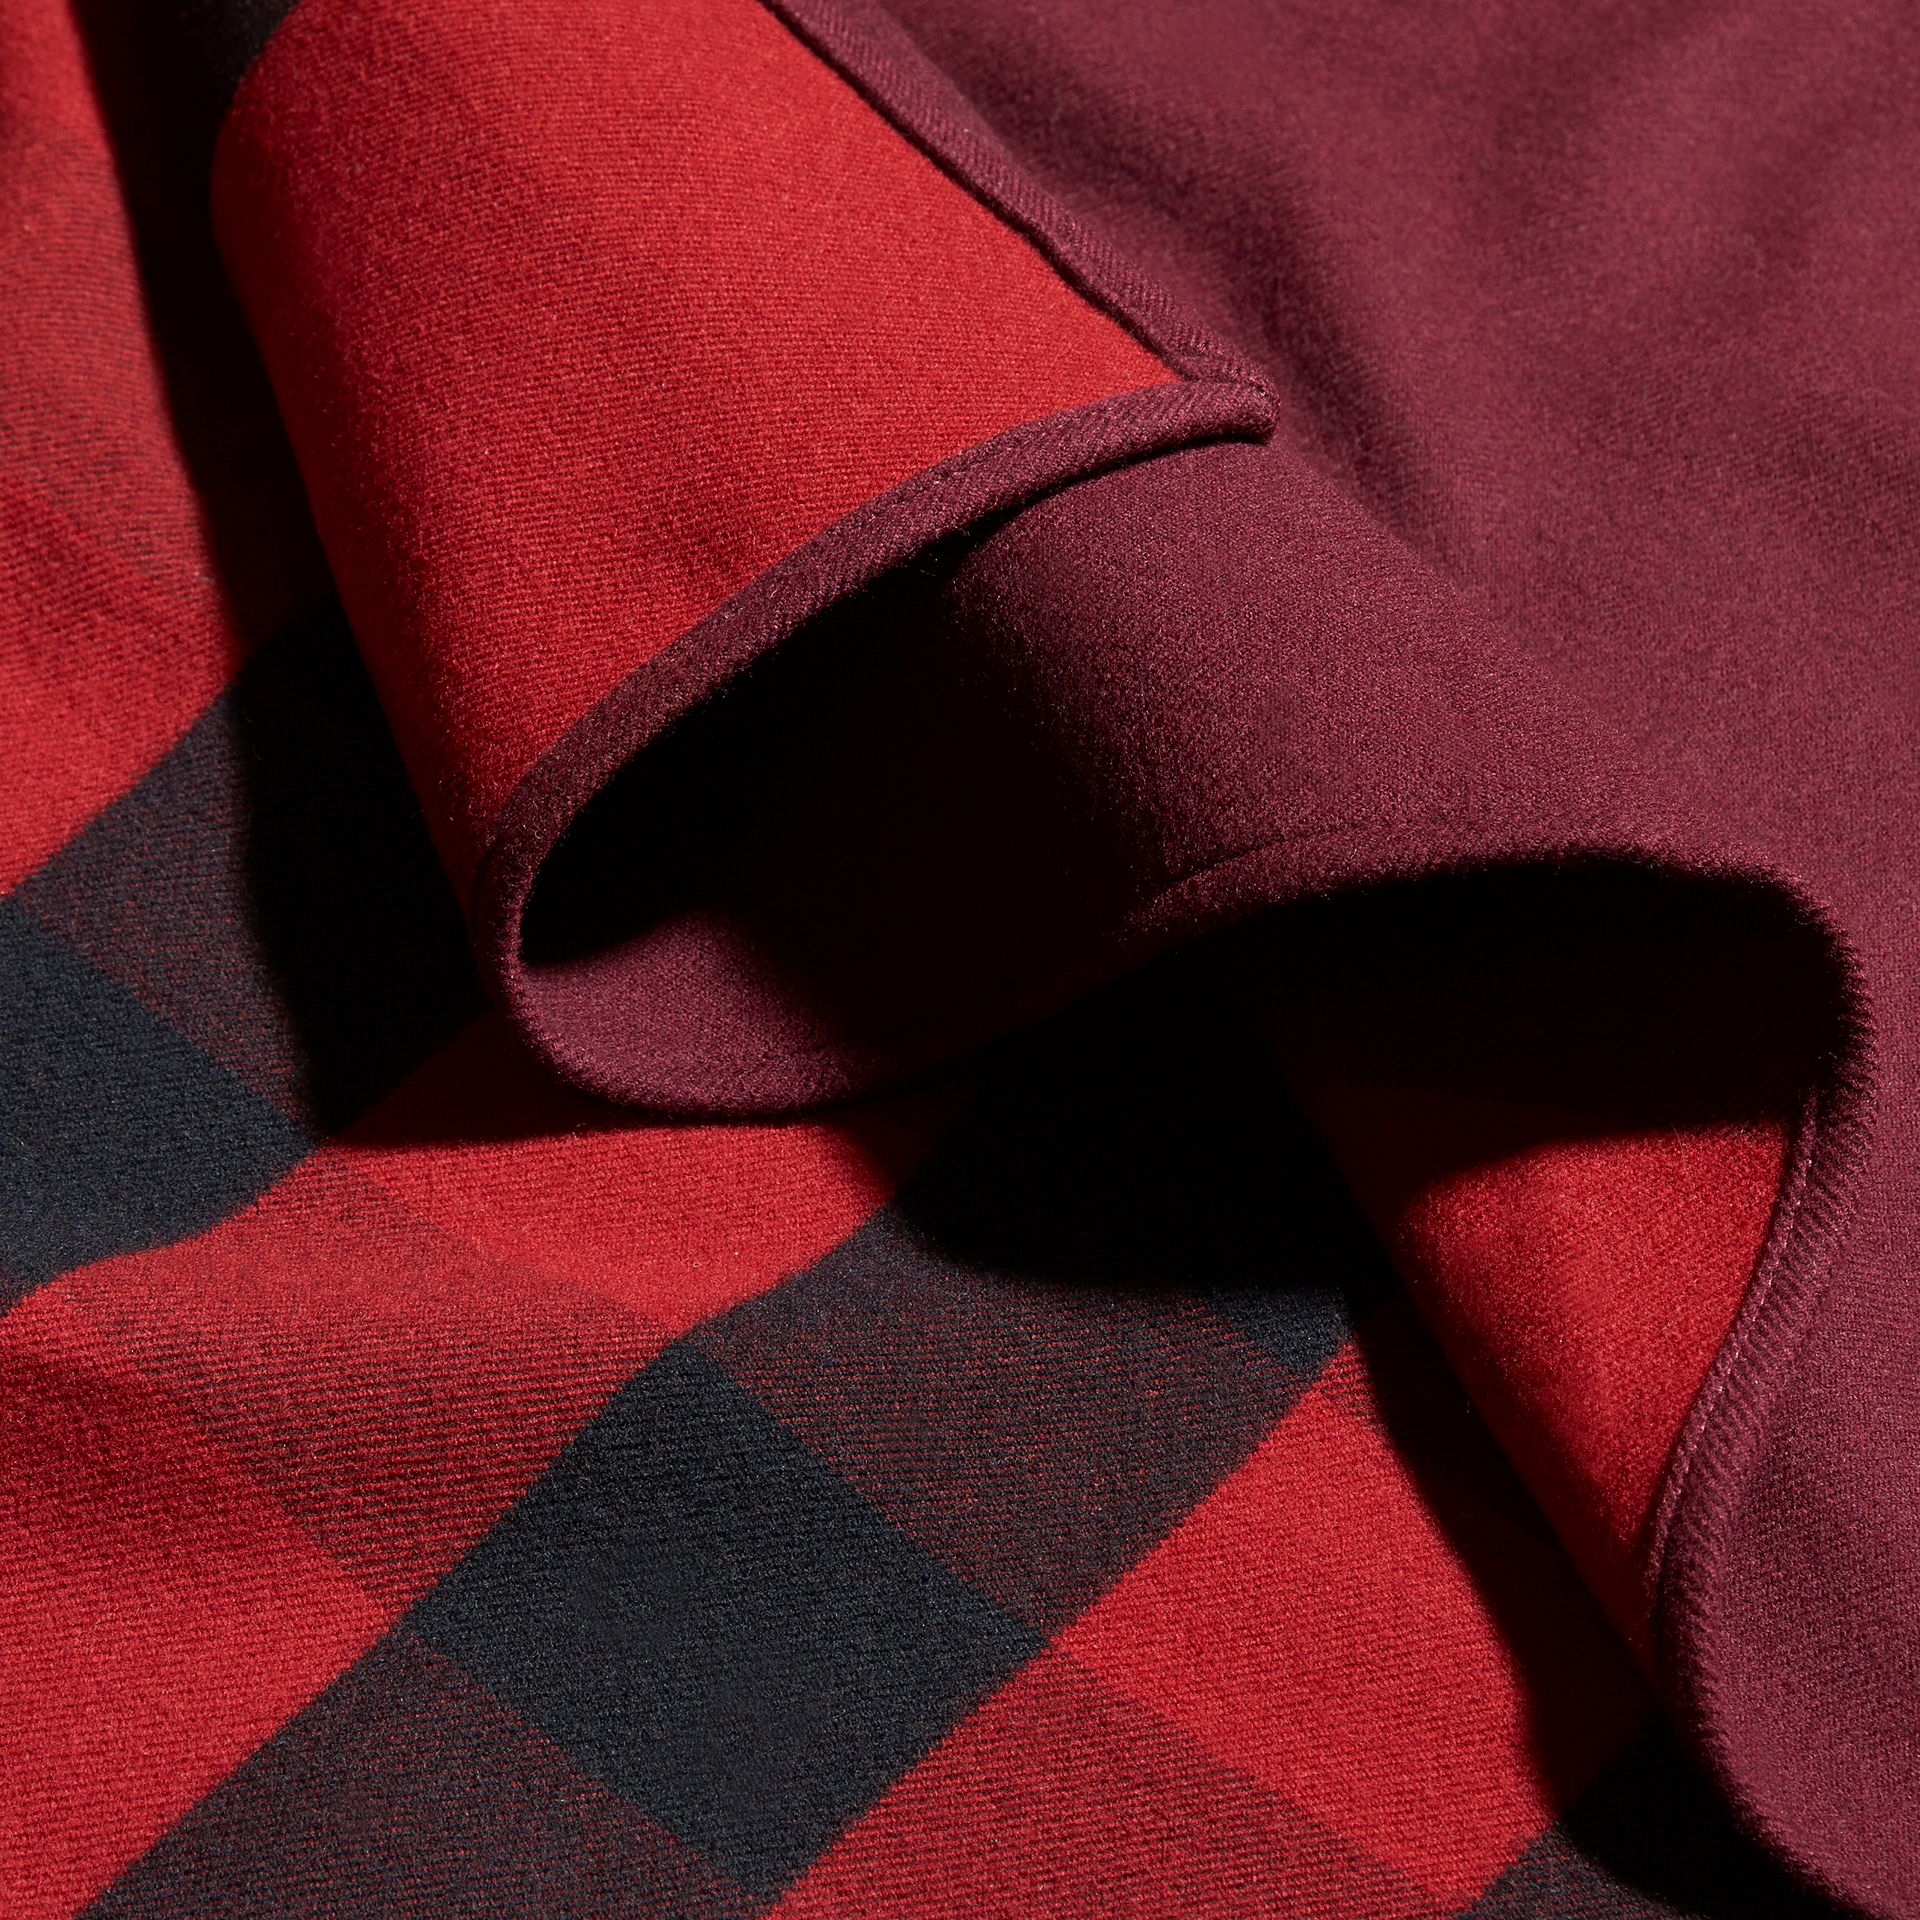 Reversible Check Merino Wool Poncho in Parade Red - Women | Burberry Canada - gallery image 2